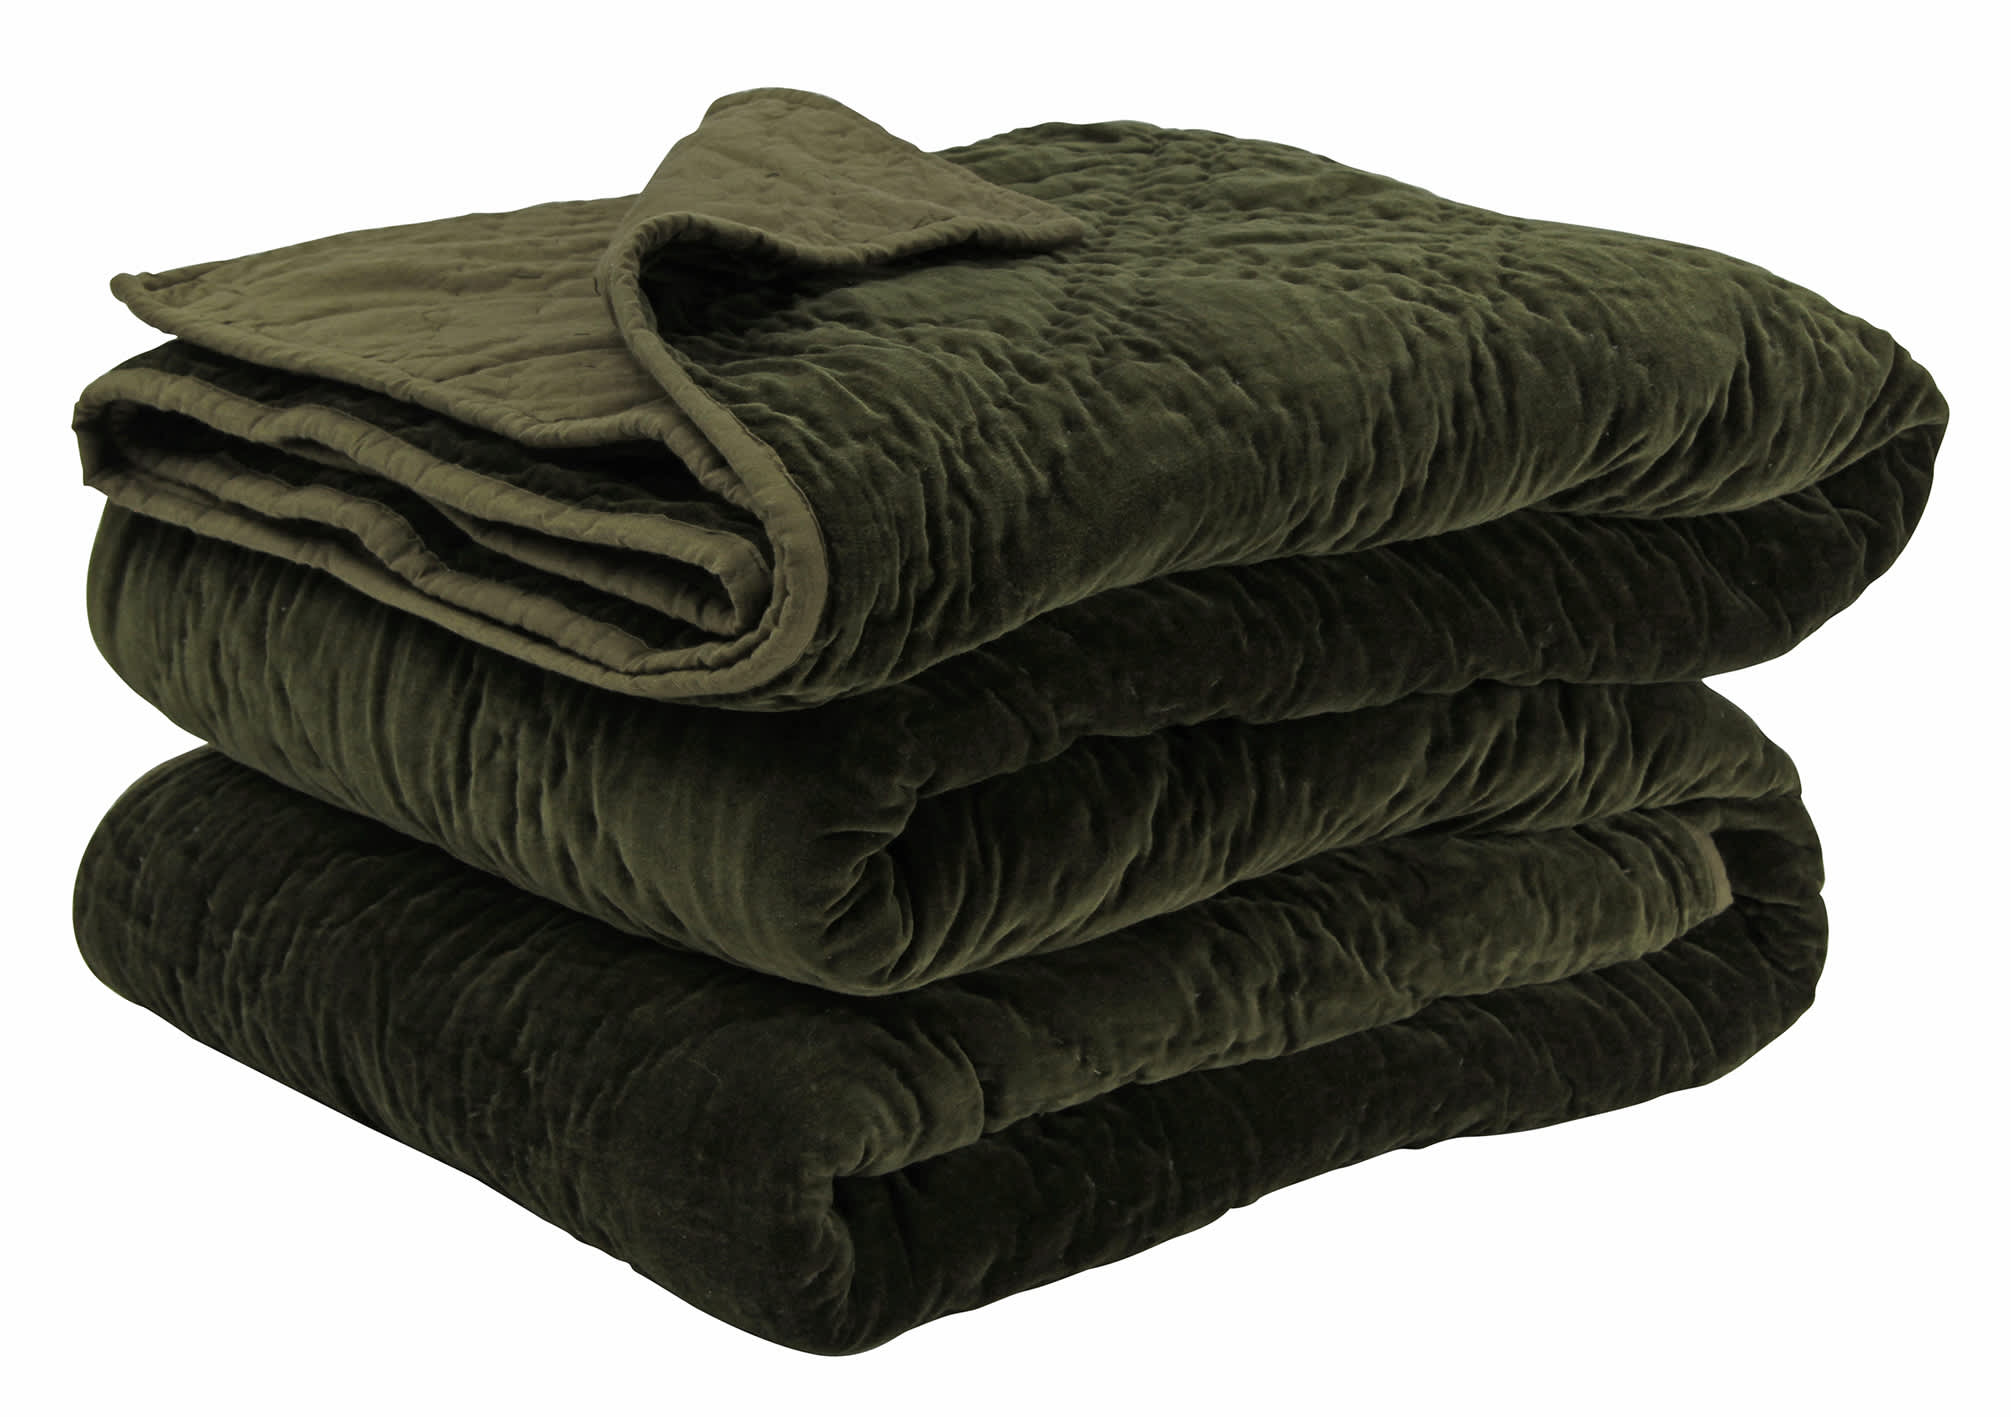 Wallace Cotton Large Olive Plush Velvet Bedspread